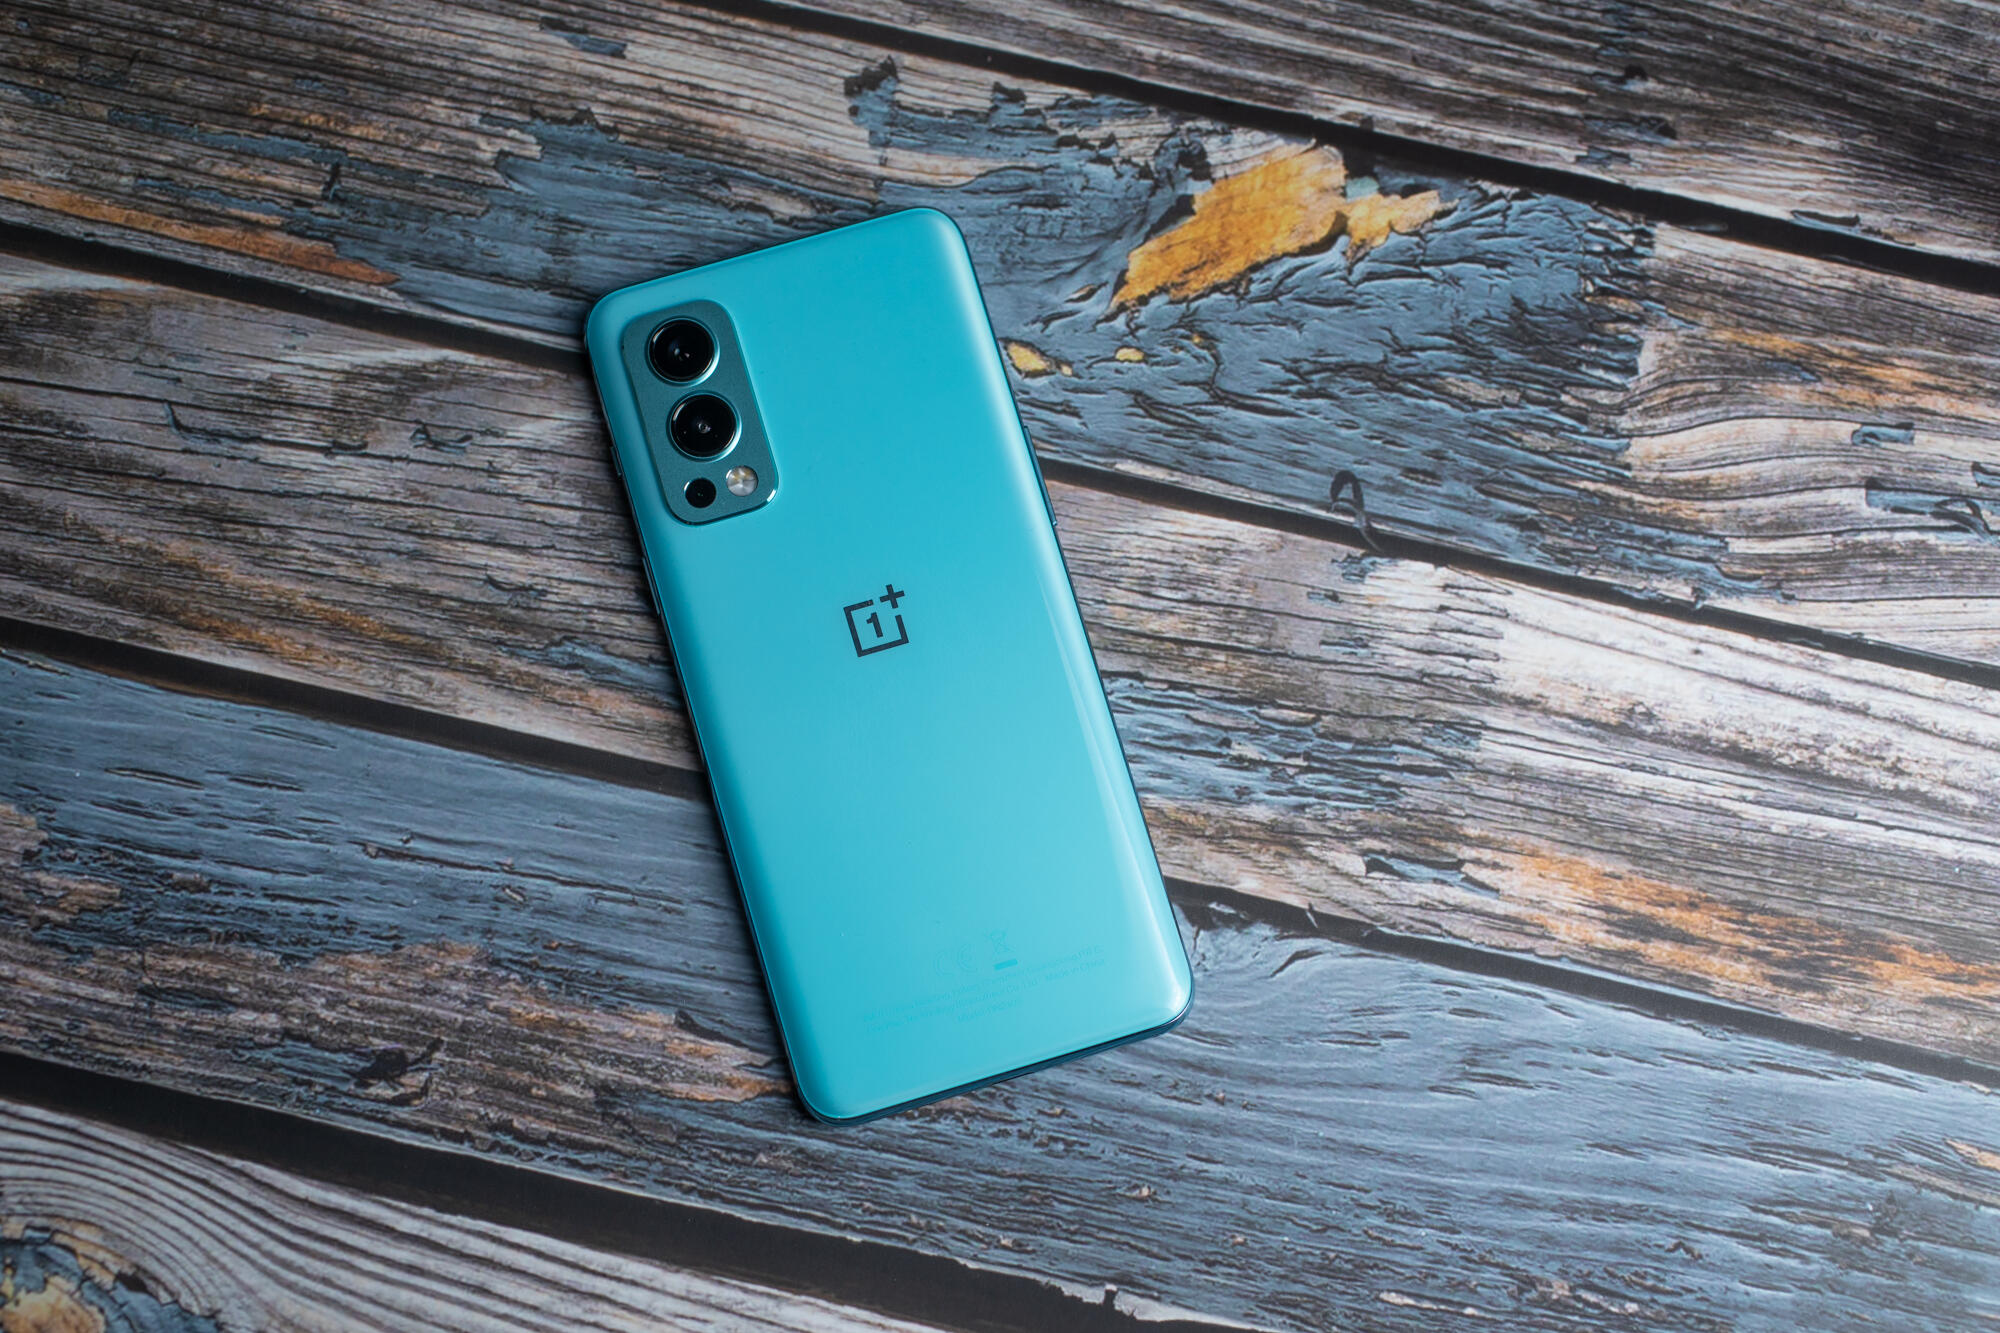 oneplus-nord-2-cnet-hoyle